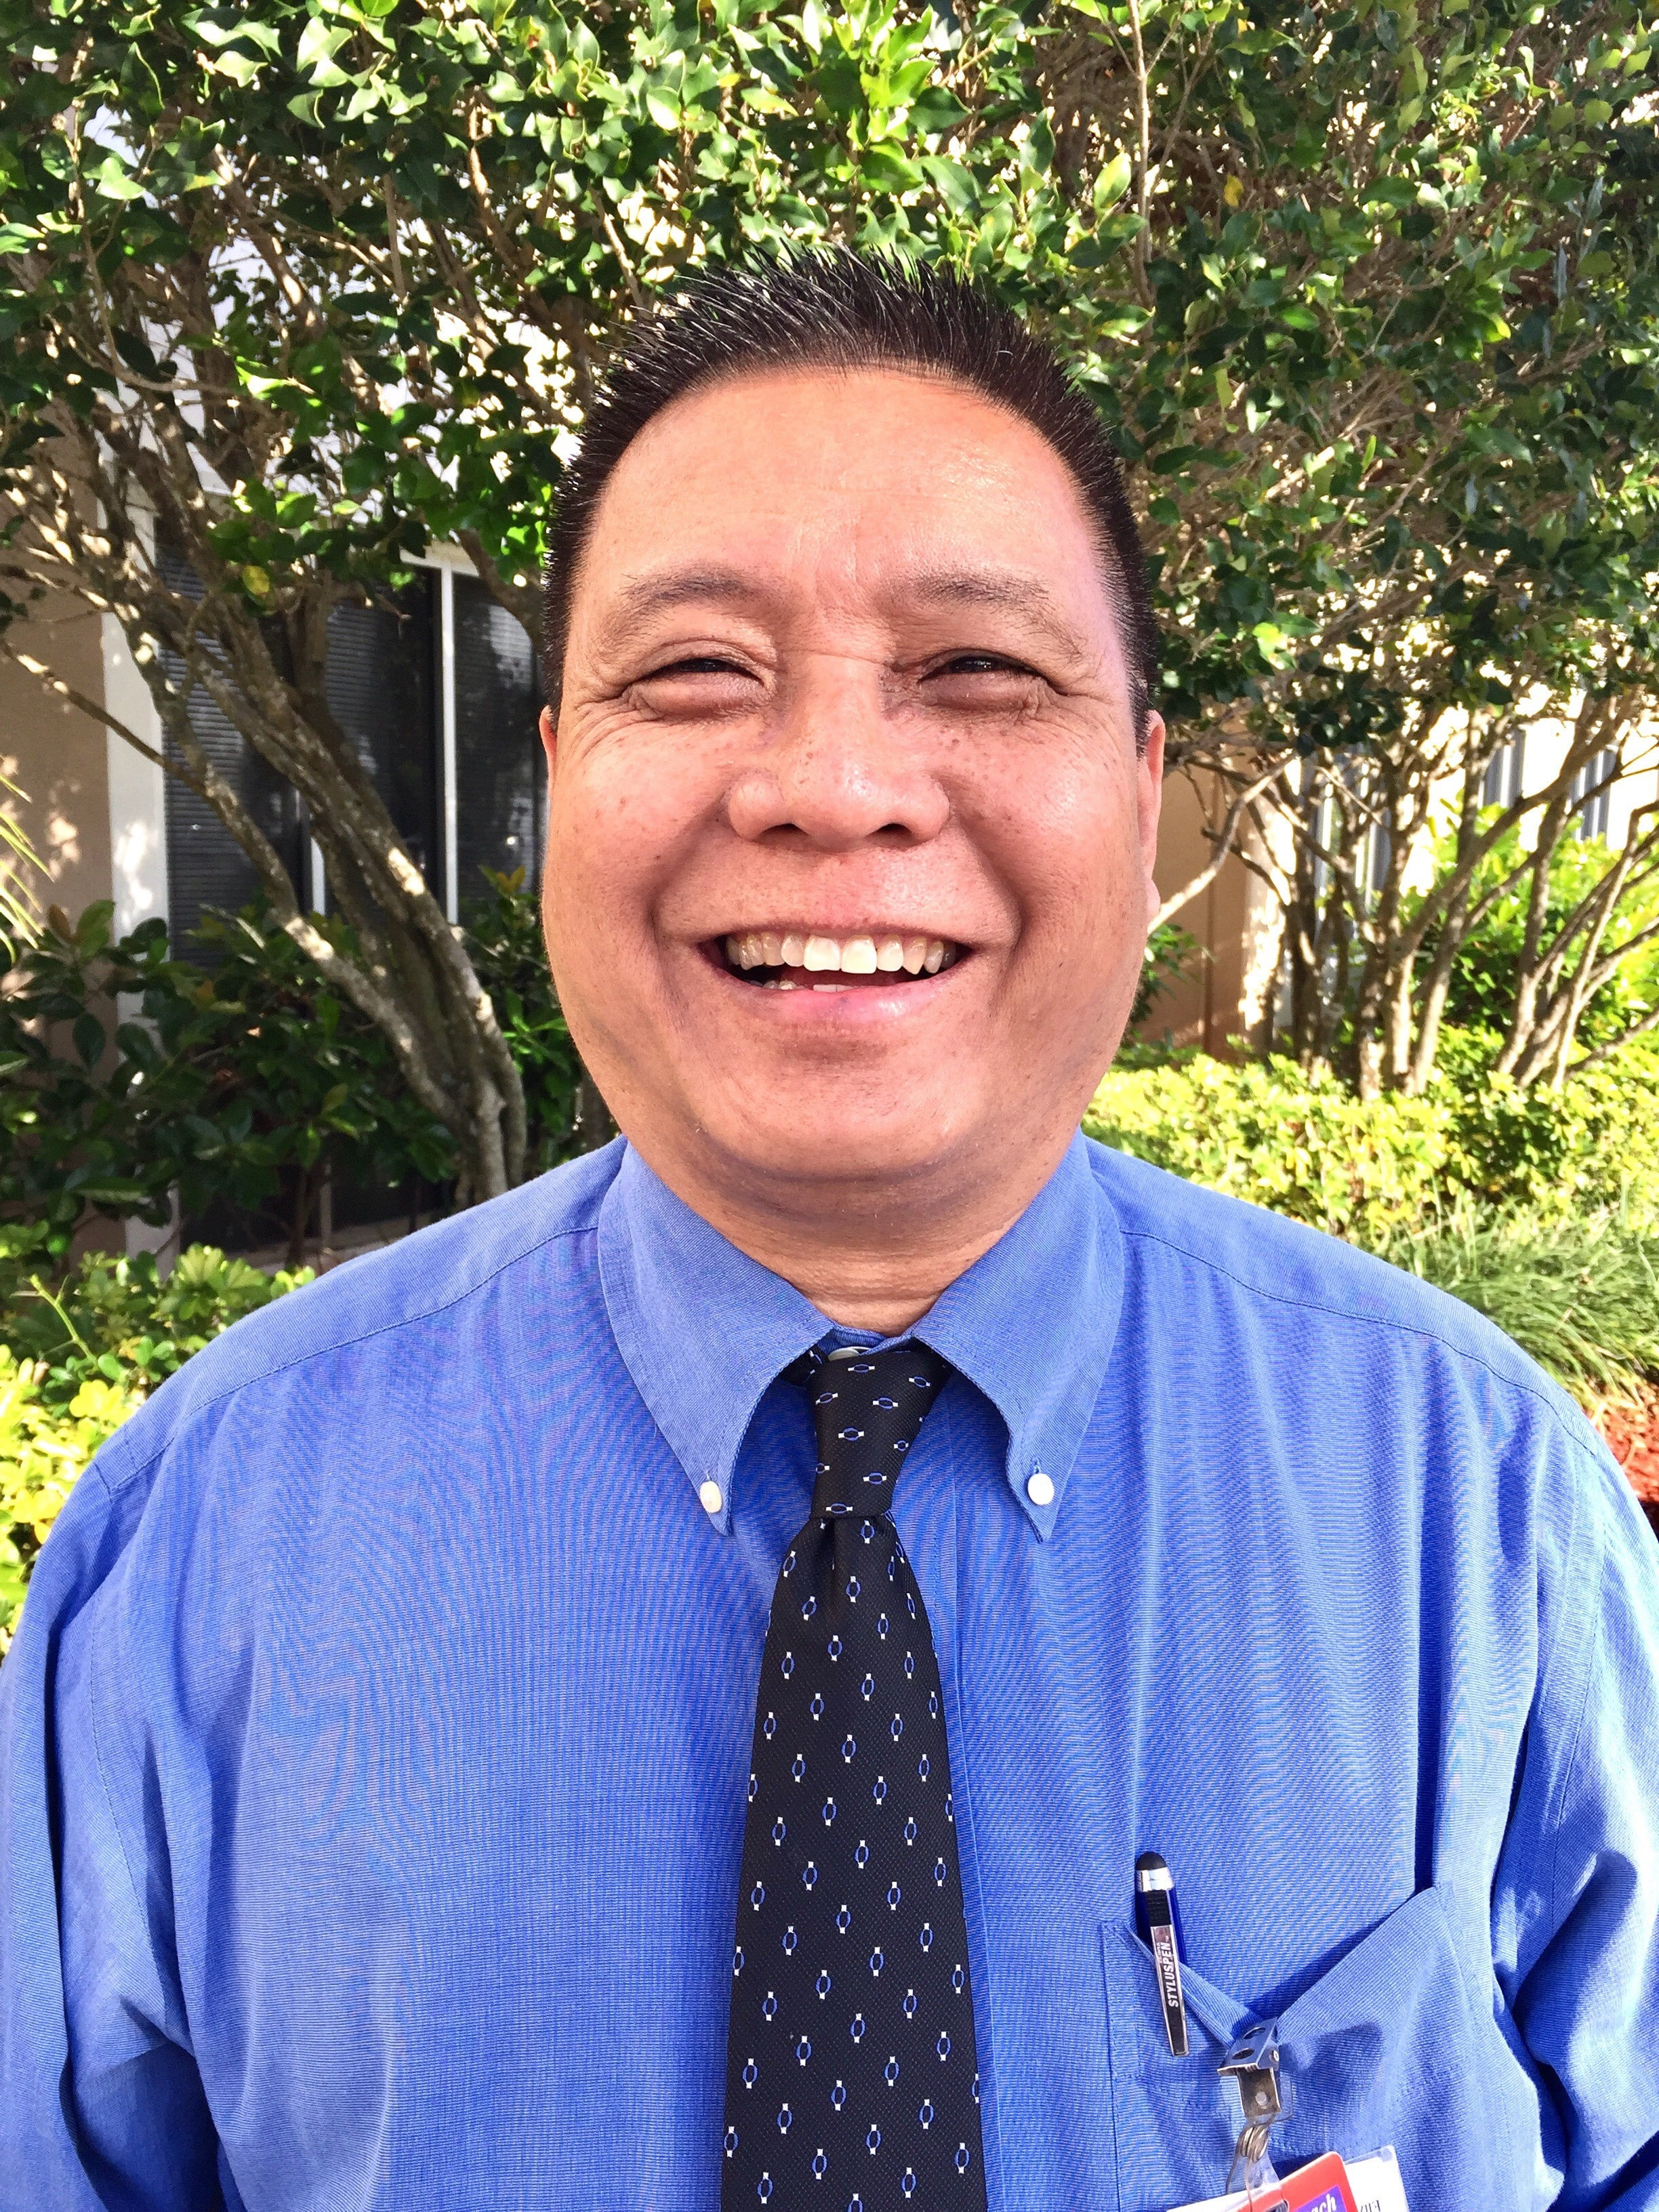 FACULTY SPOTLIGHT for #NursesWeek – Arnel Lorinos MSN, RN at KU West Palm Beach